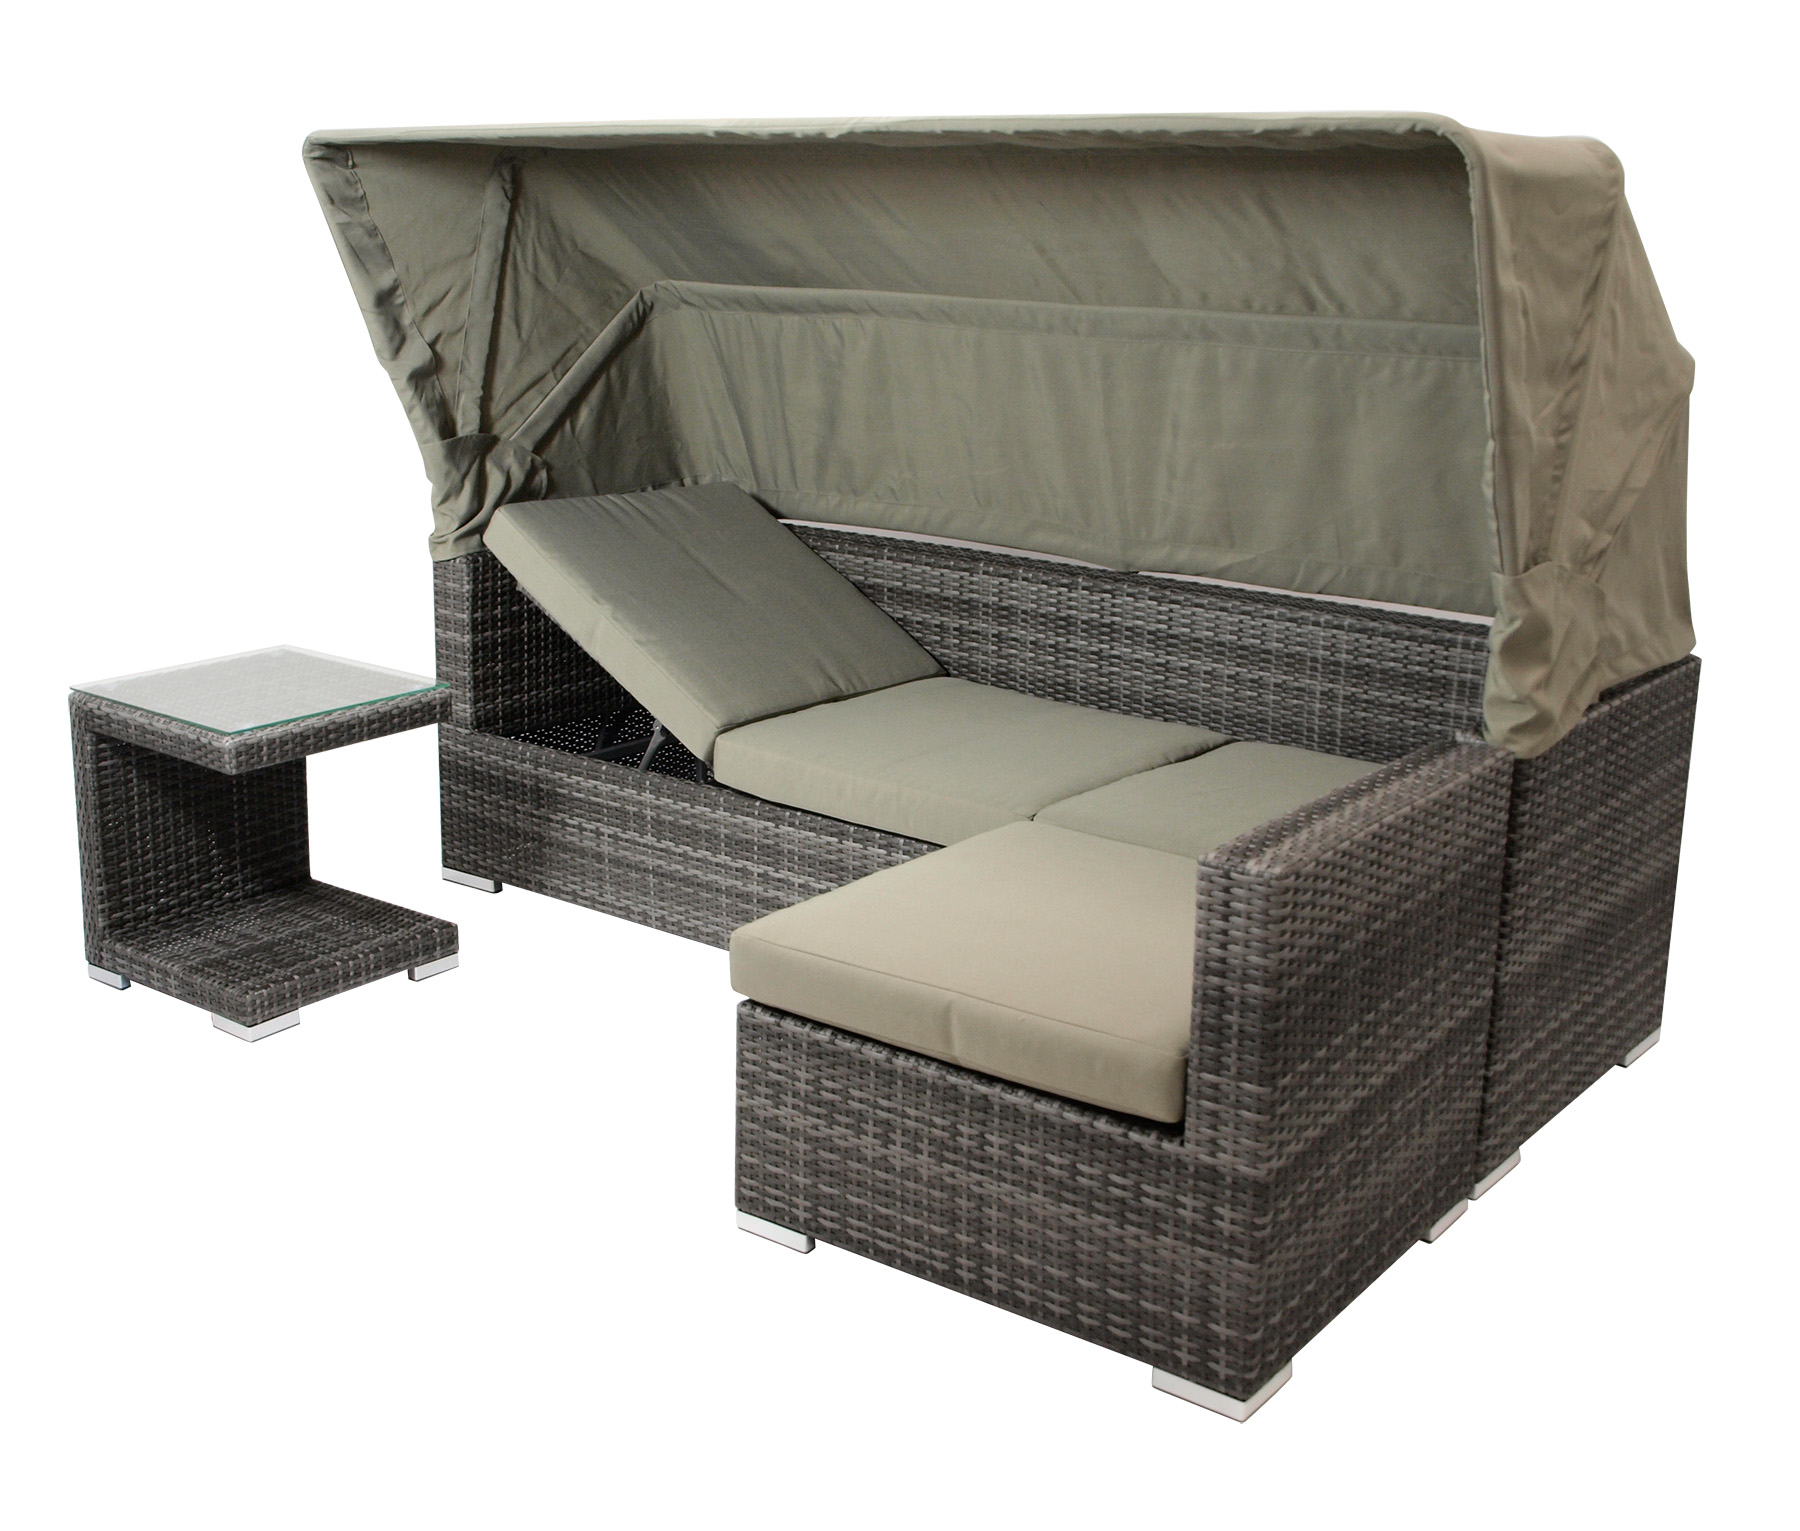 loungeset sitzgruppe liege gartenm bel lounge manacor alu. Black Bedroom Furniture Sets. Home Design Ideas